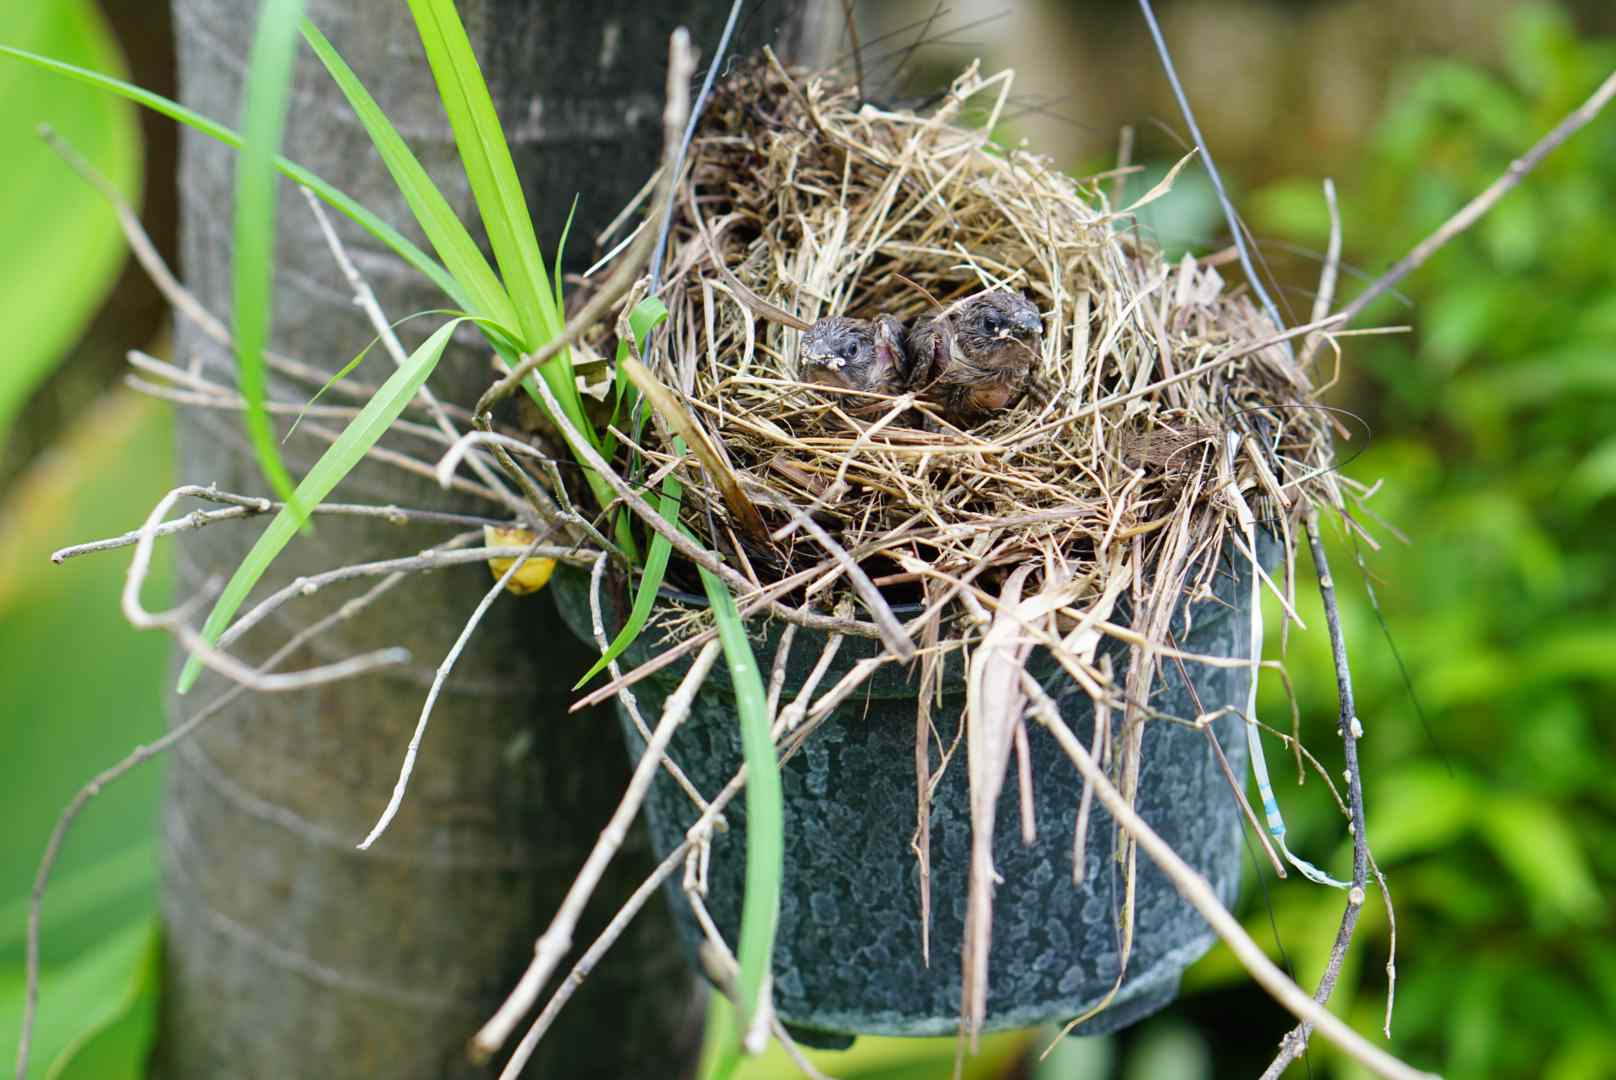 encouraging birds to nest in a safer space